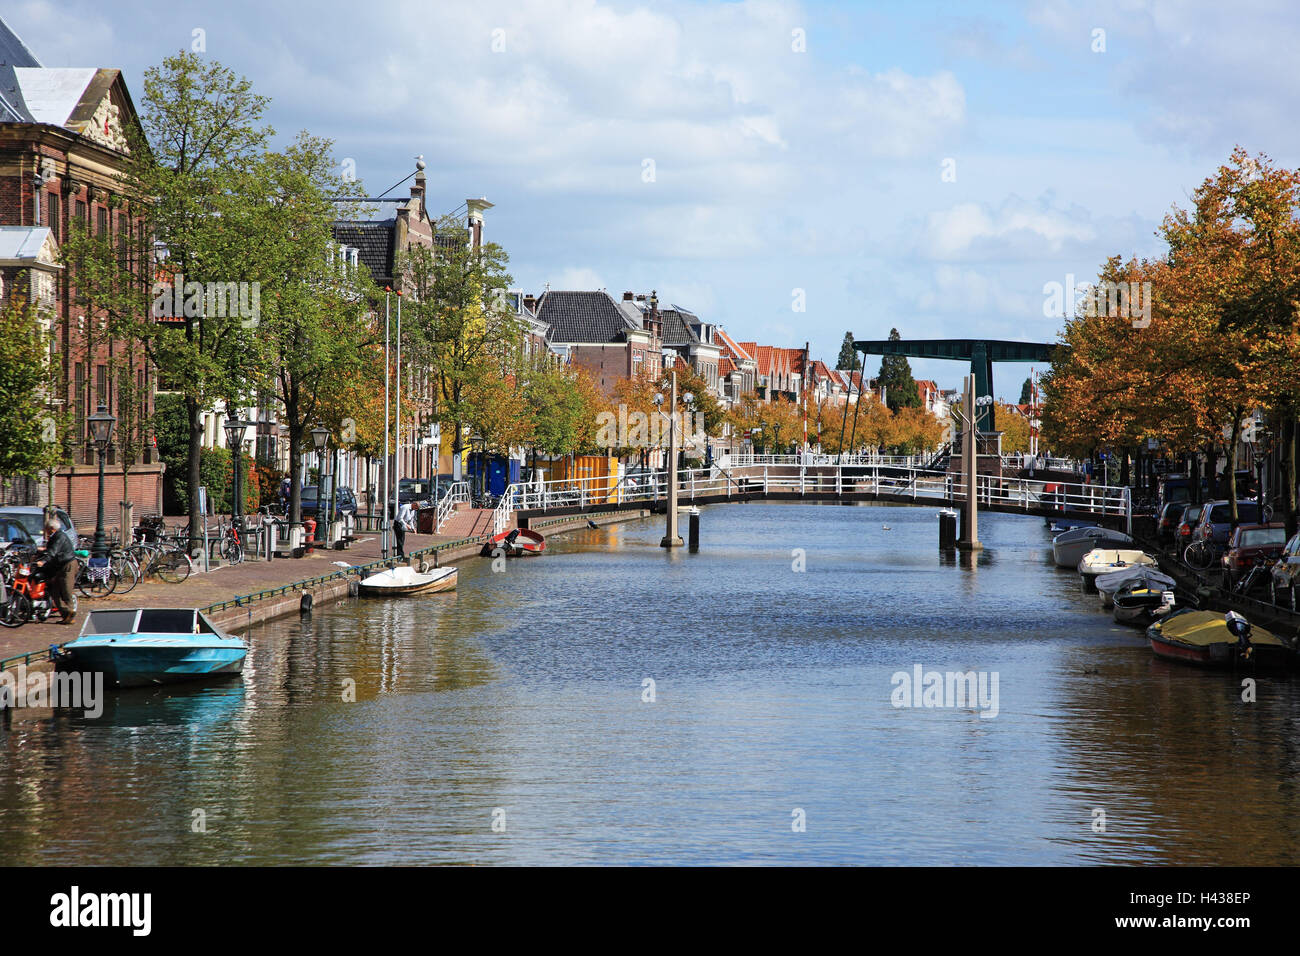 The Netherlands, ailments, town view, channel, - Stock Image